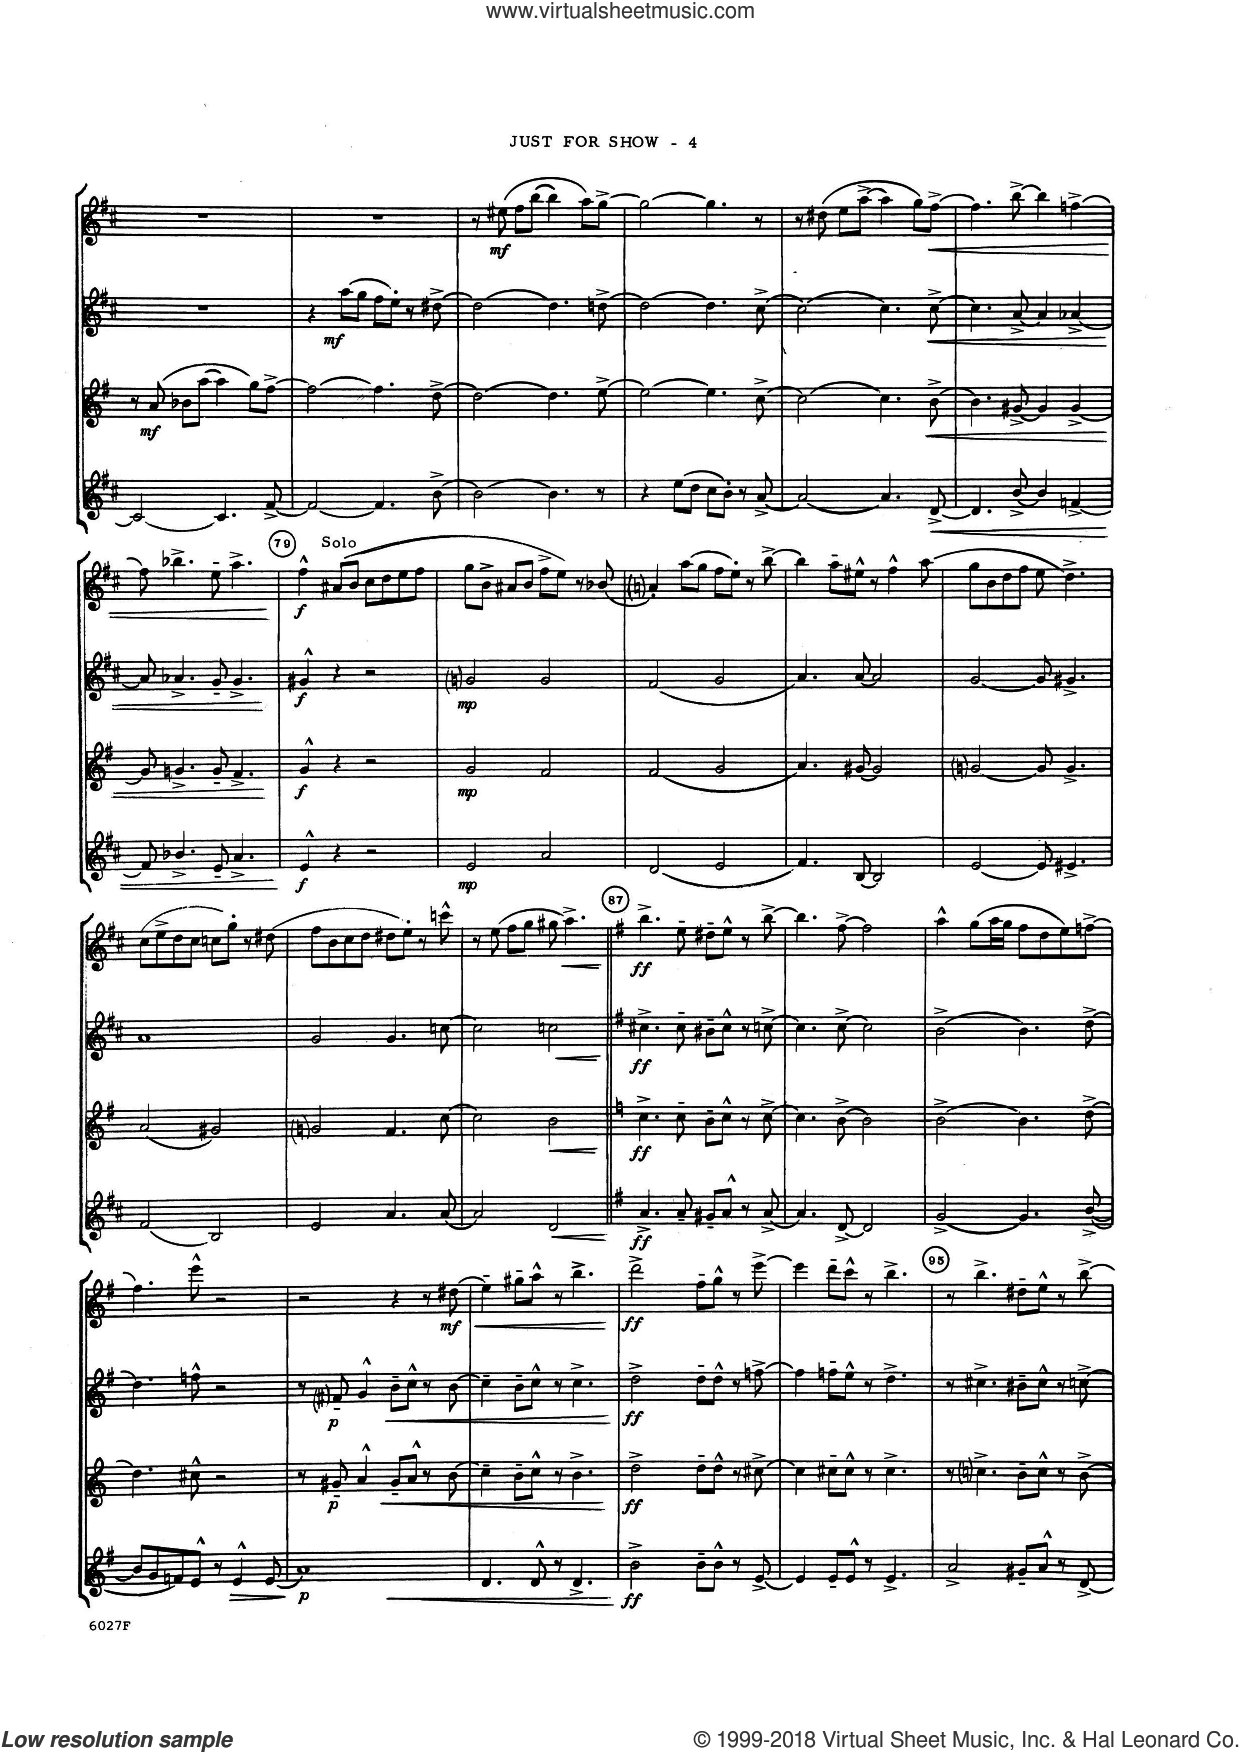 Just For Show (COMPLETE) sheet music for saxophone quartet by Lennie Niehaus, intermediate saxophone quartet. Score Image Preview.